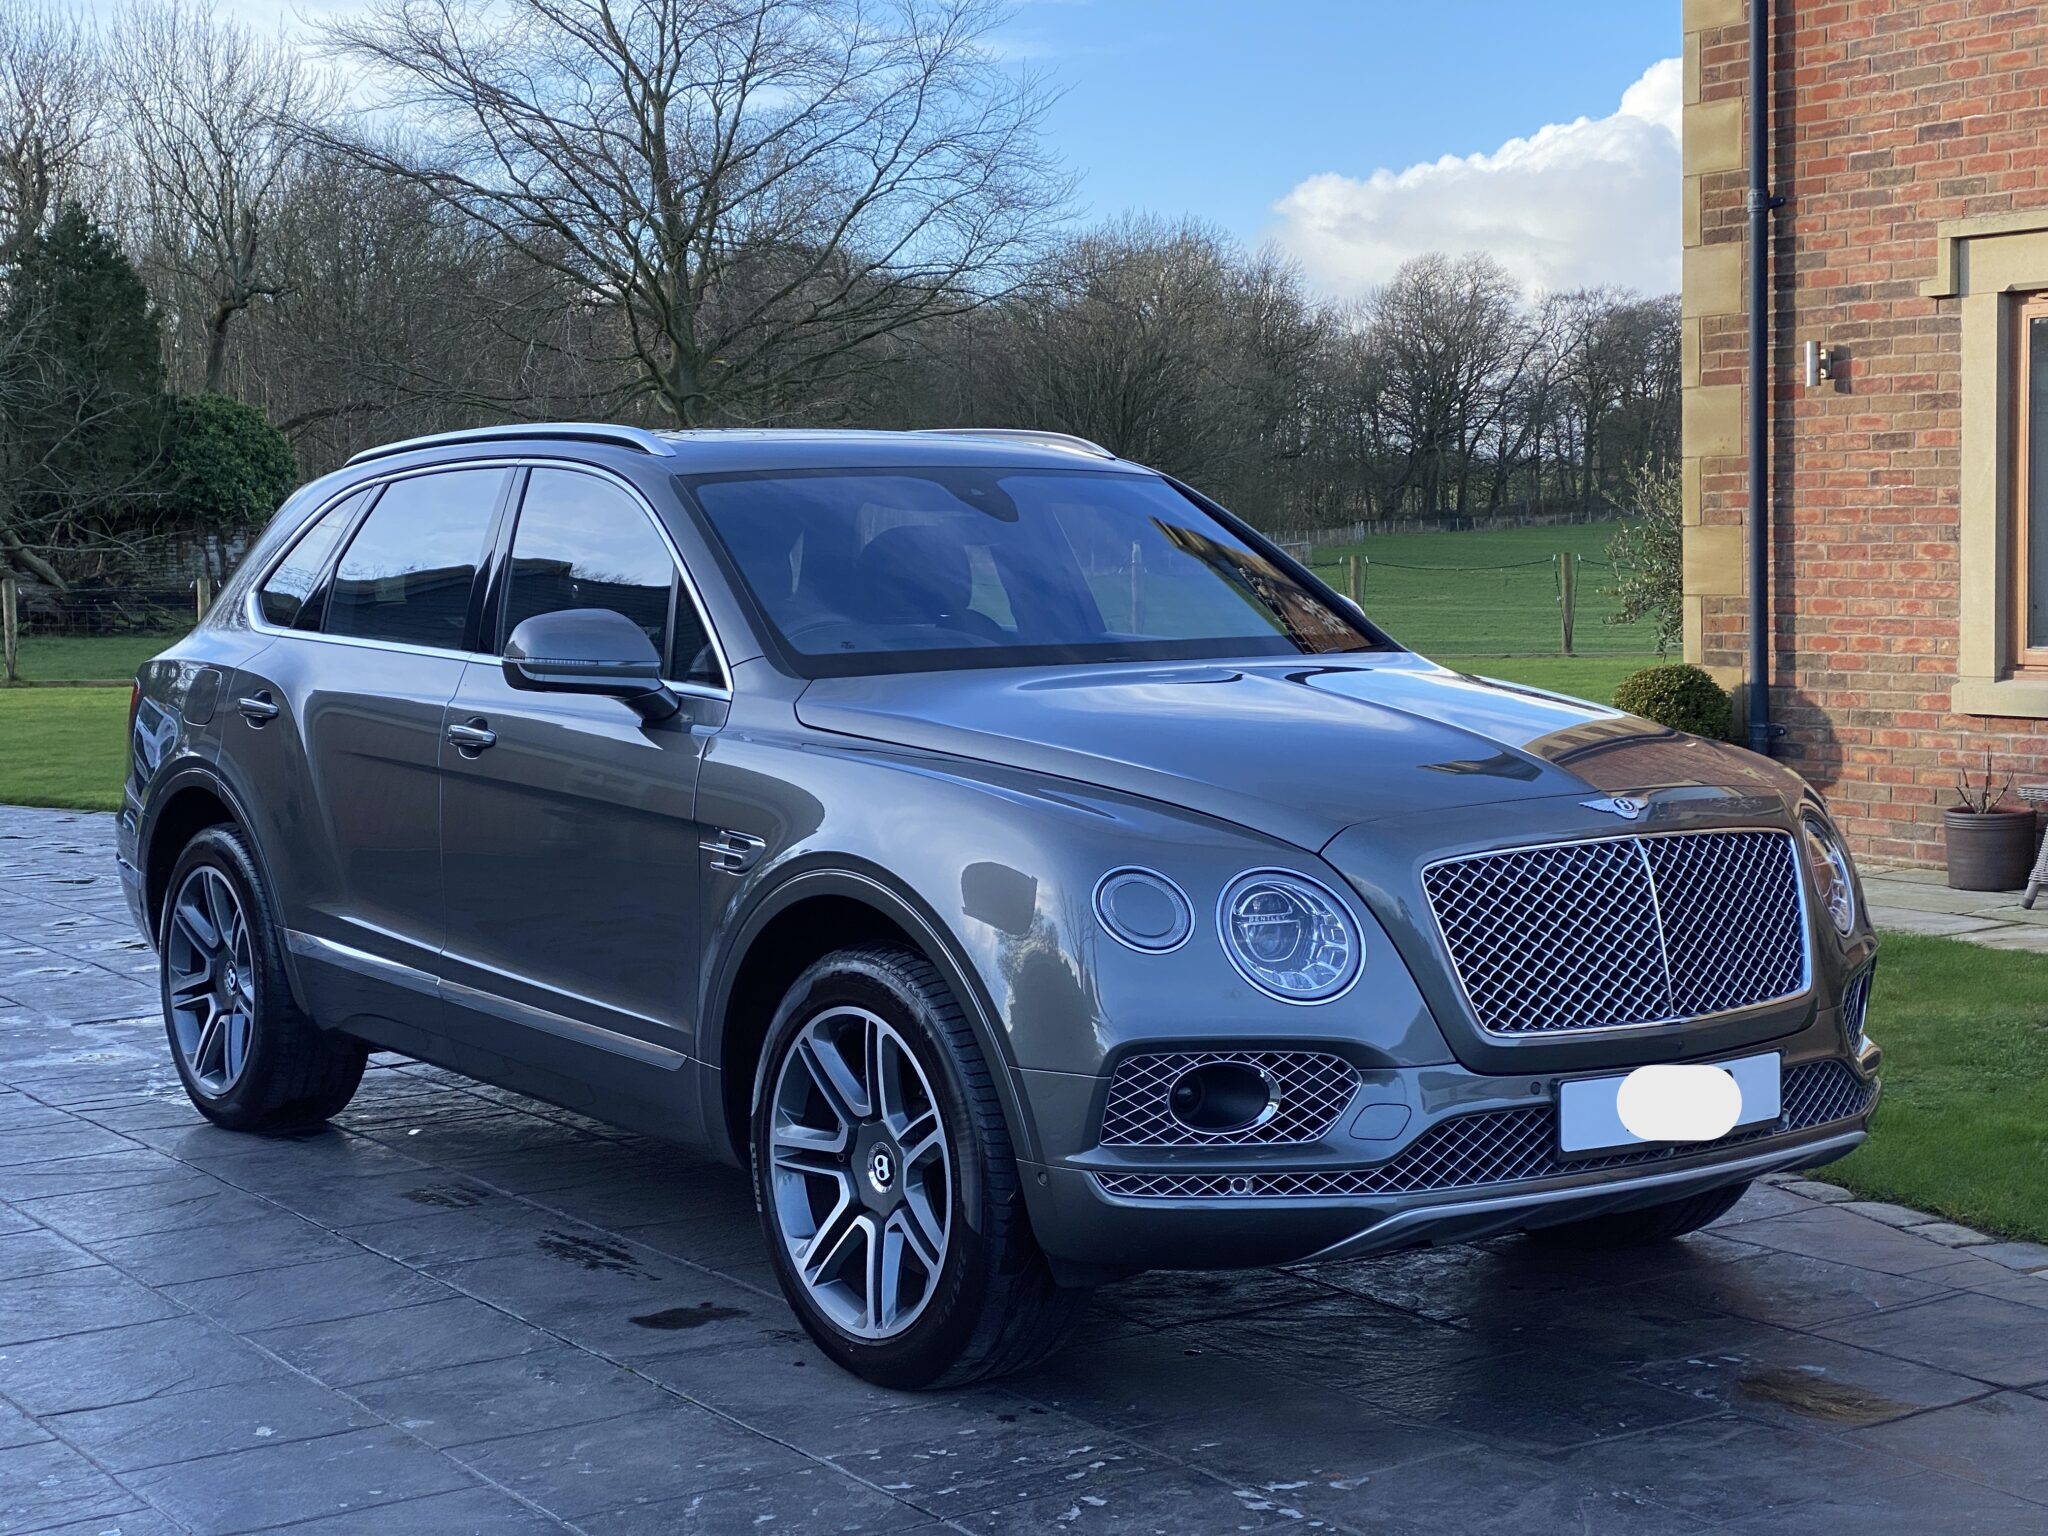 2018 18 BENTLEY BENTAYGA W12 6.0 MULLINER 4WD TOURING & CITY PACK 1 Lady Owner Huge Spec Immaculate